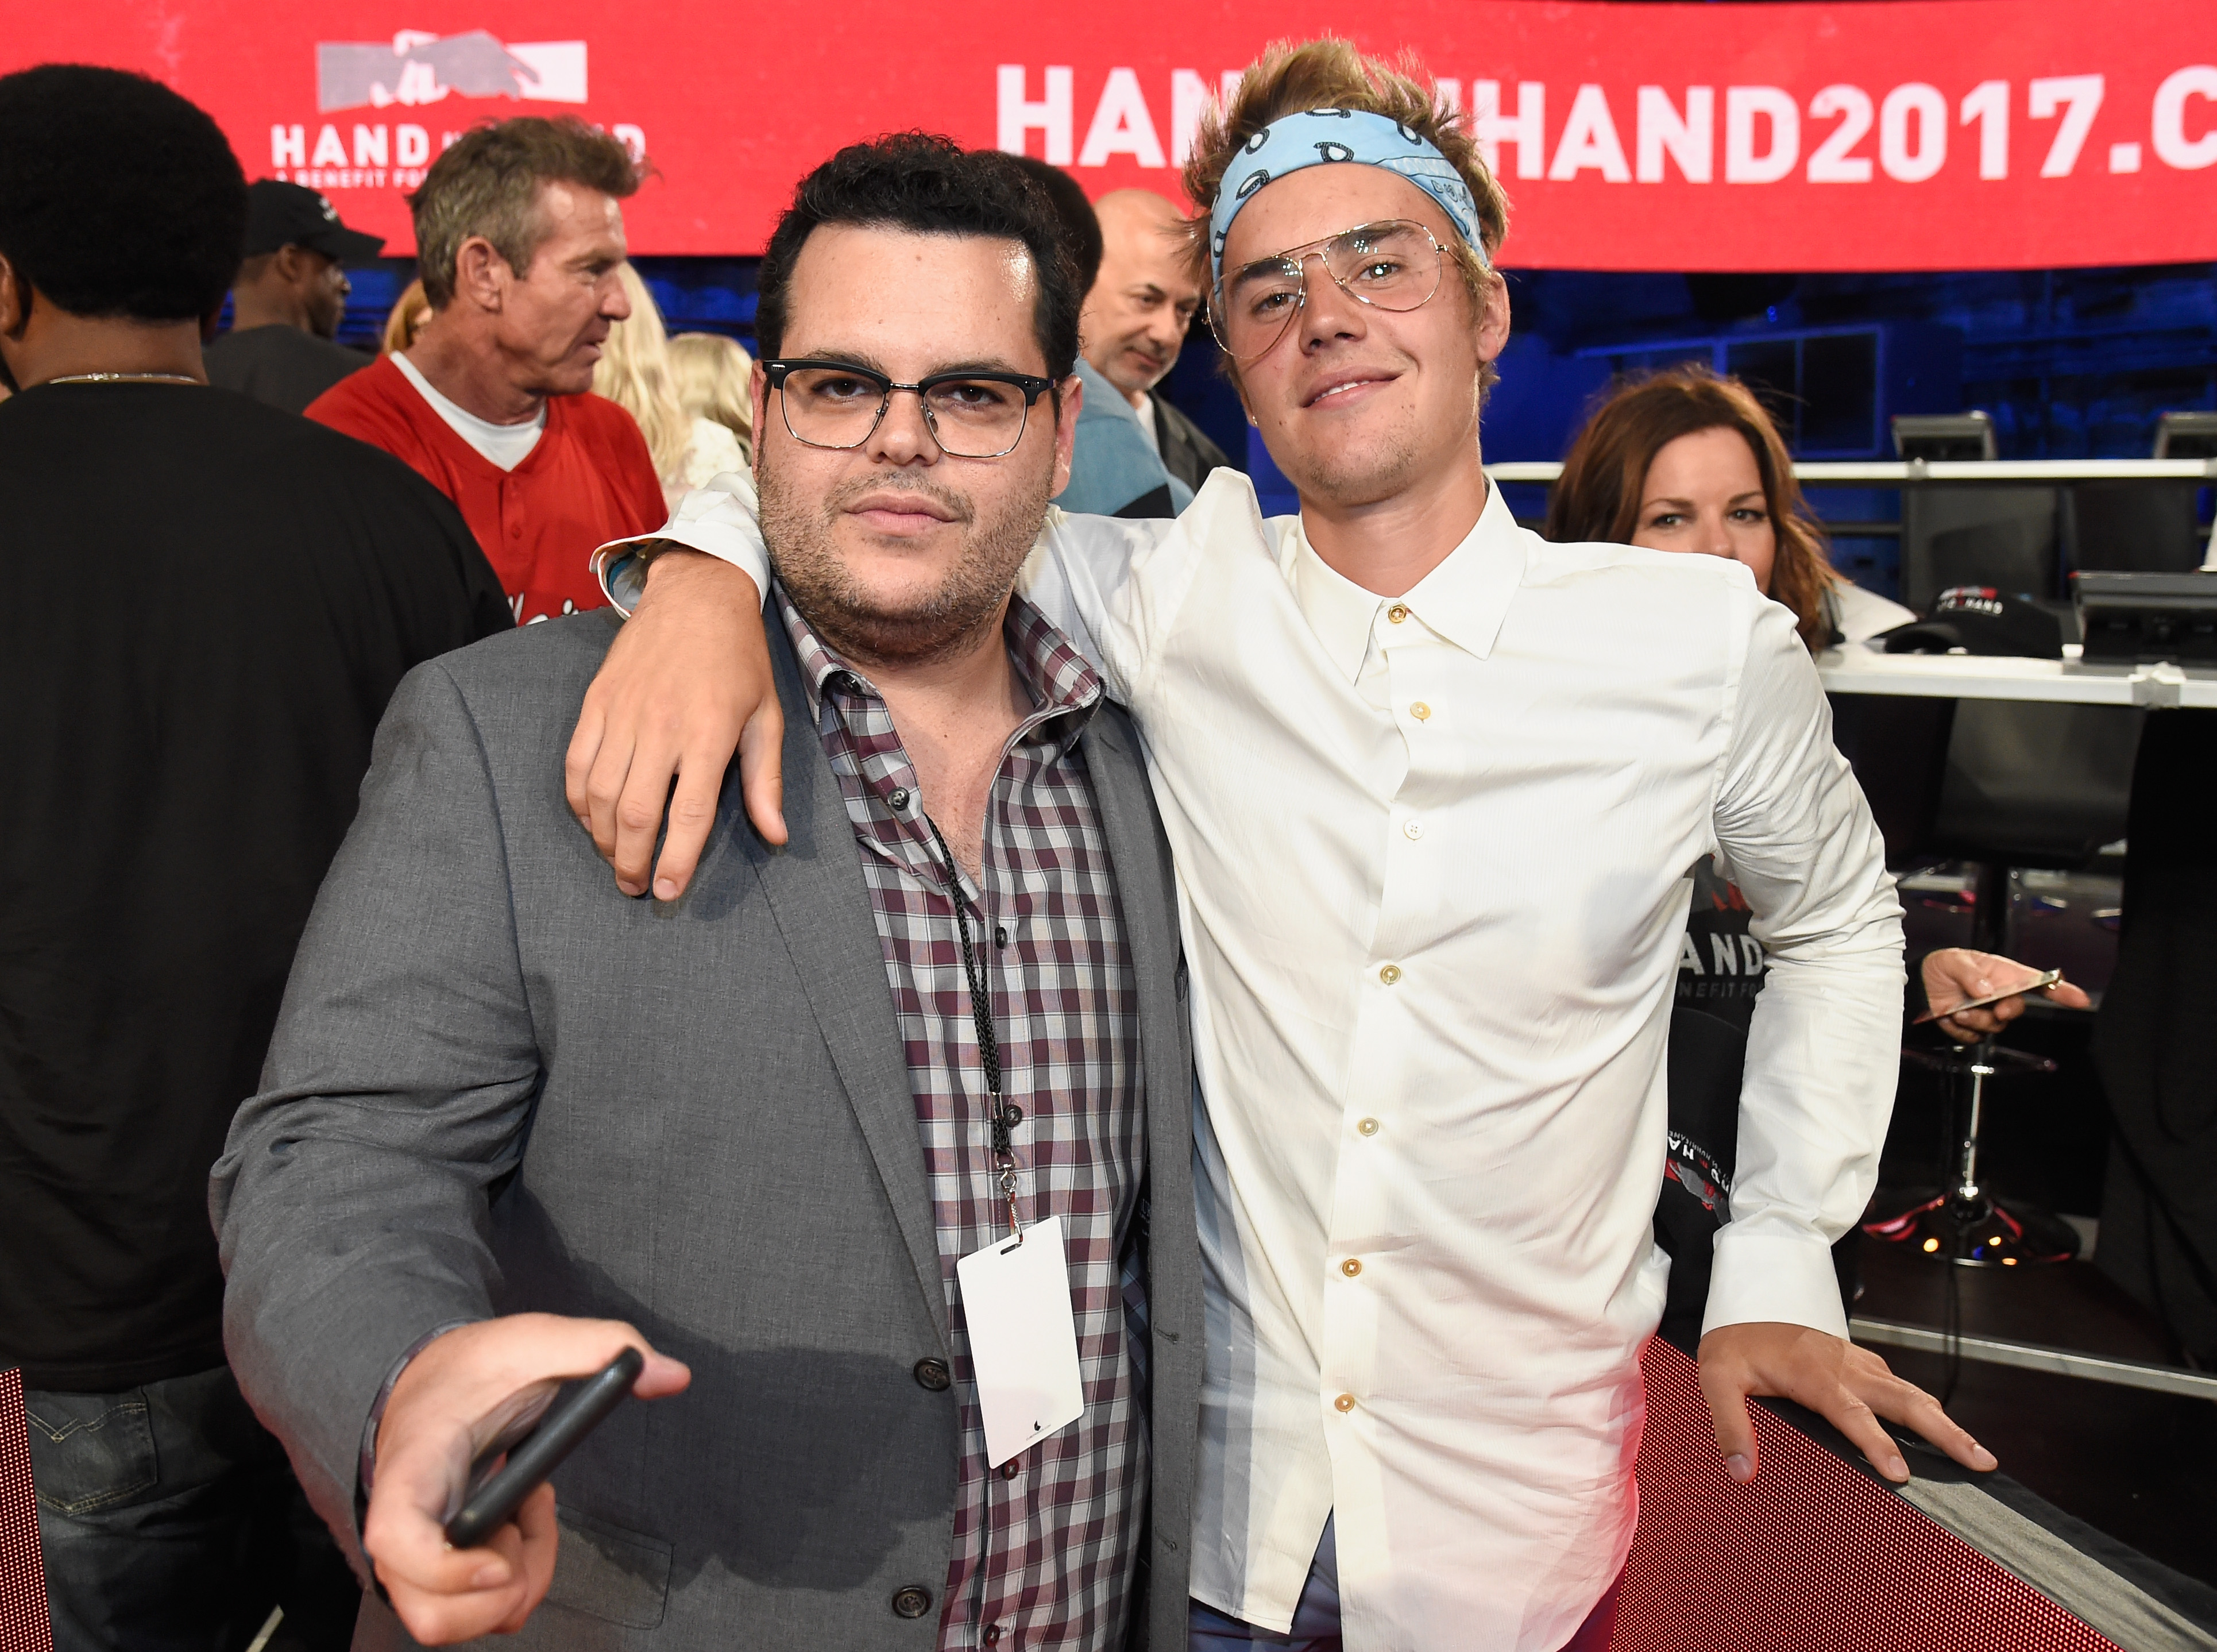 "<div class=""meta image-caption""><div class=""origin-logo origin-image none""><span>none</span></div><span class=""caption-text"">Josh Gad and Justin Bieber attend Hand in Hand: A Benefit for Hurricane Relief at Universal Studios AMC on September 12, 2017 in Universal City, California. (Kevin Mazur/Hand in Hand/Getty Images)</span></div>"